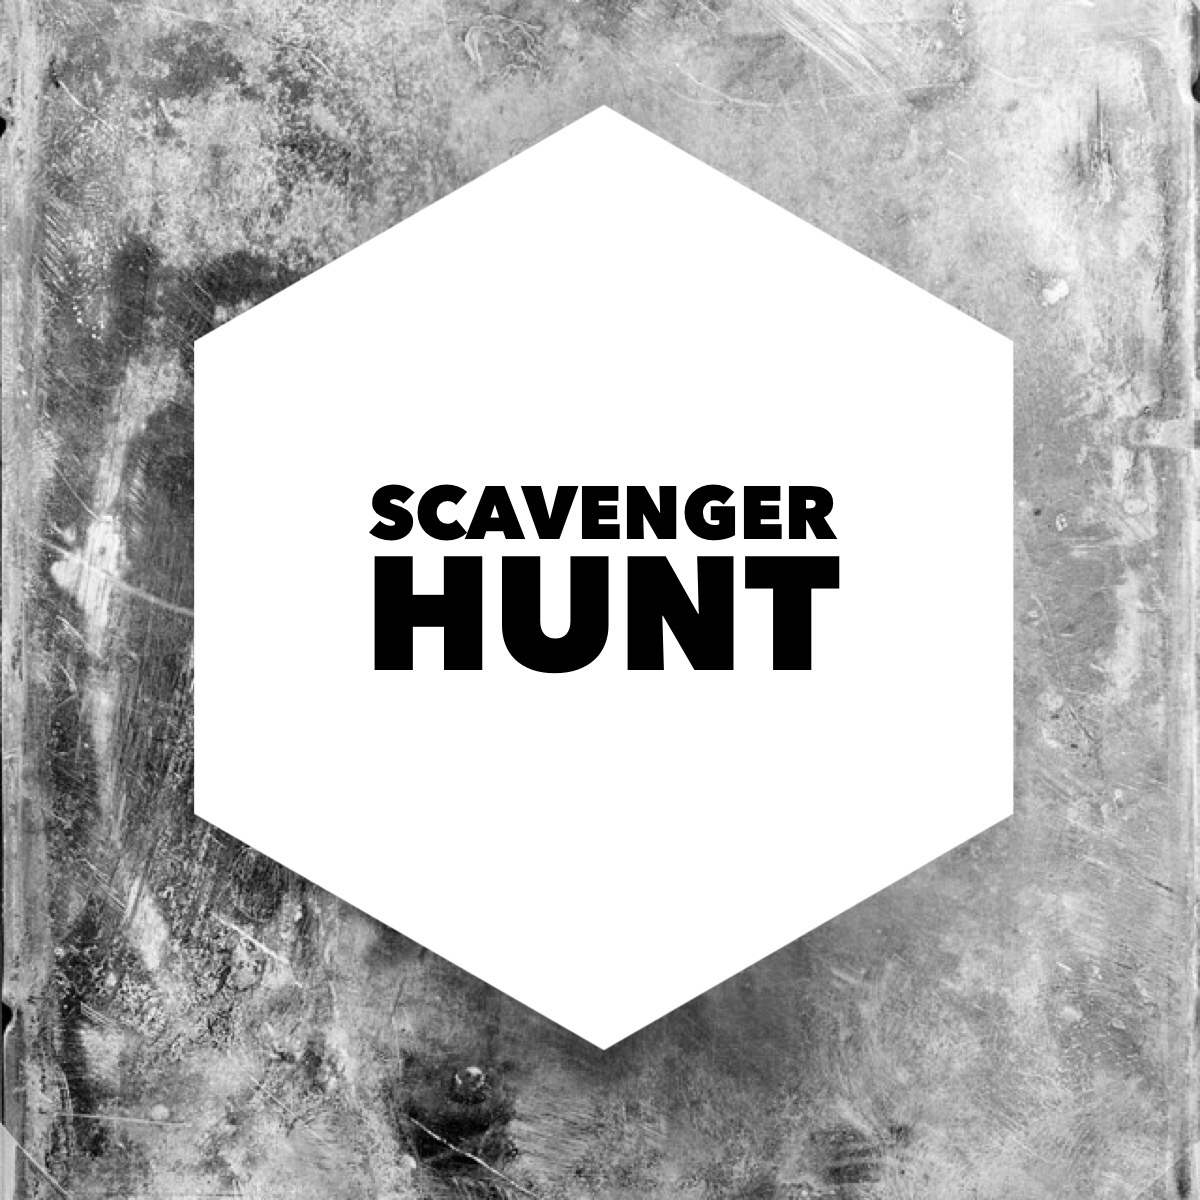 scavenger hunt -experience gifts to give this season